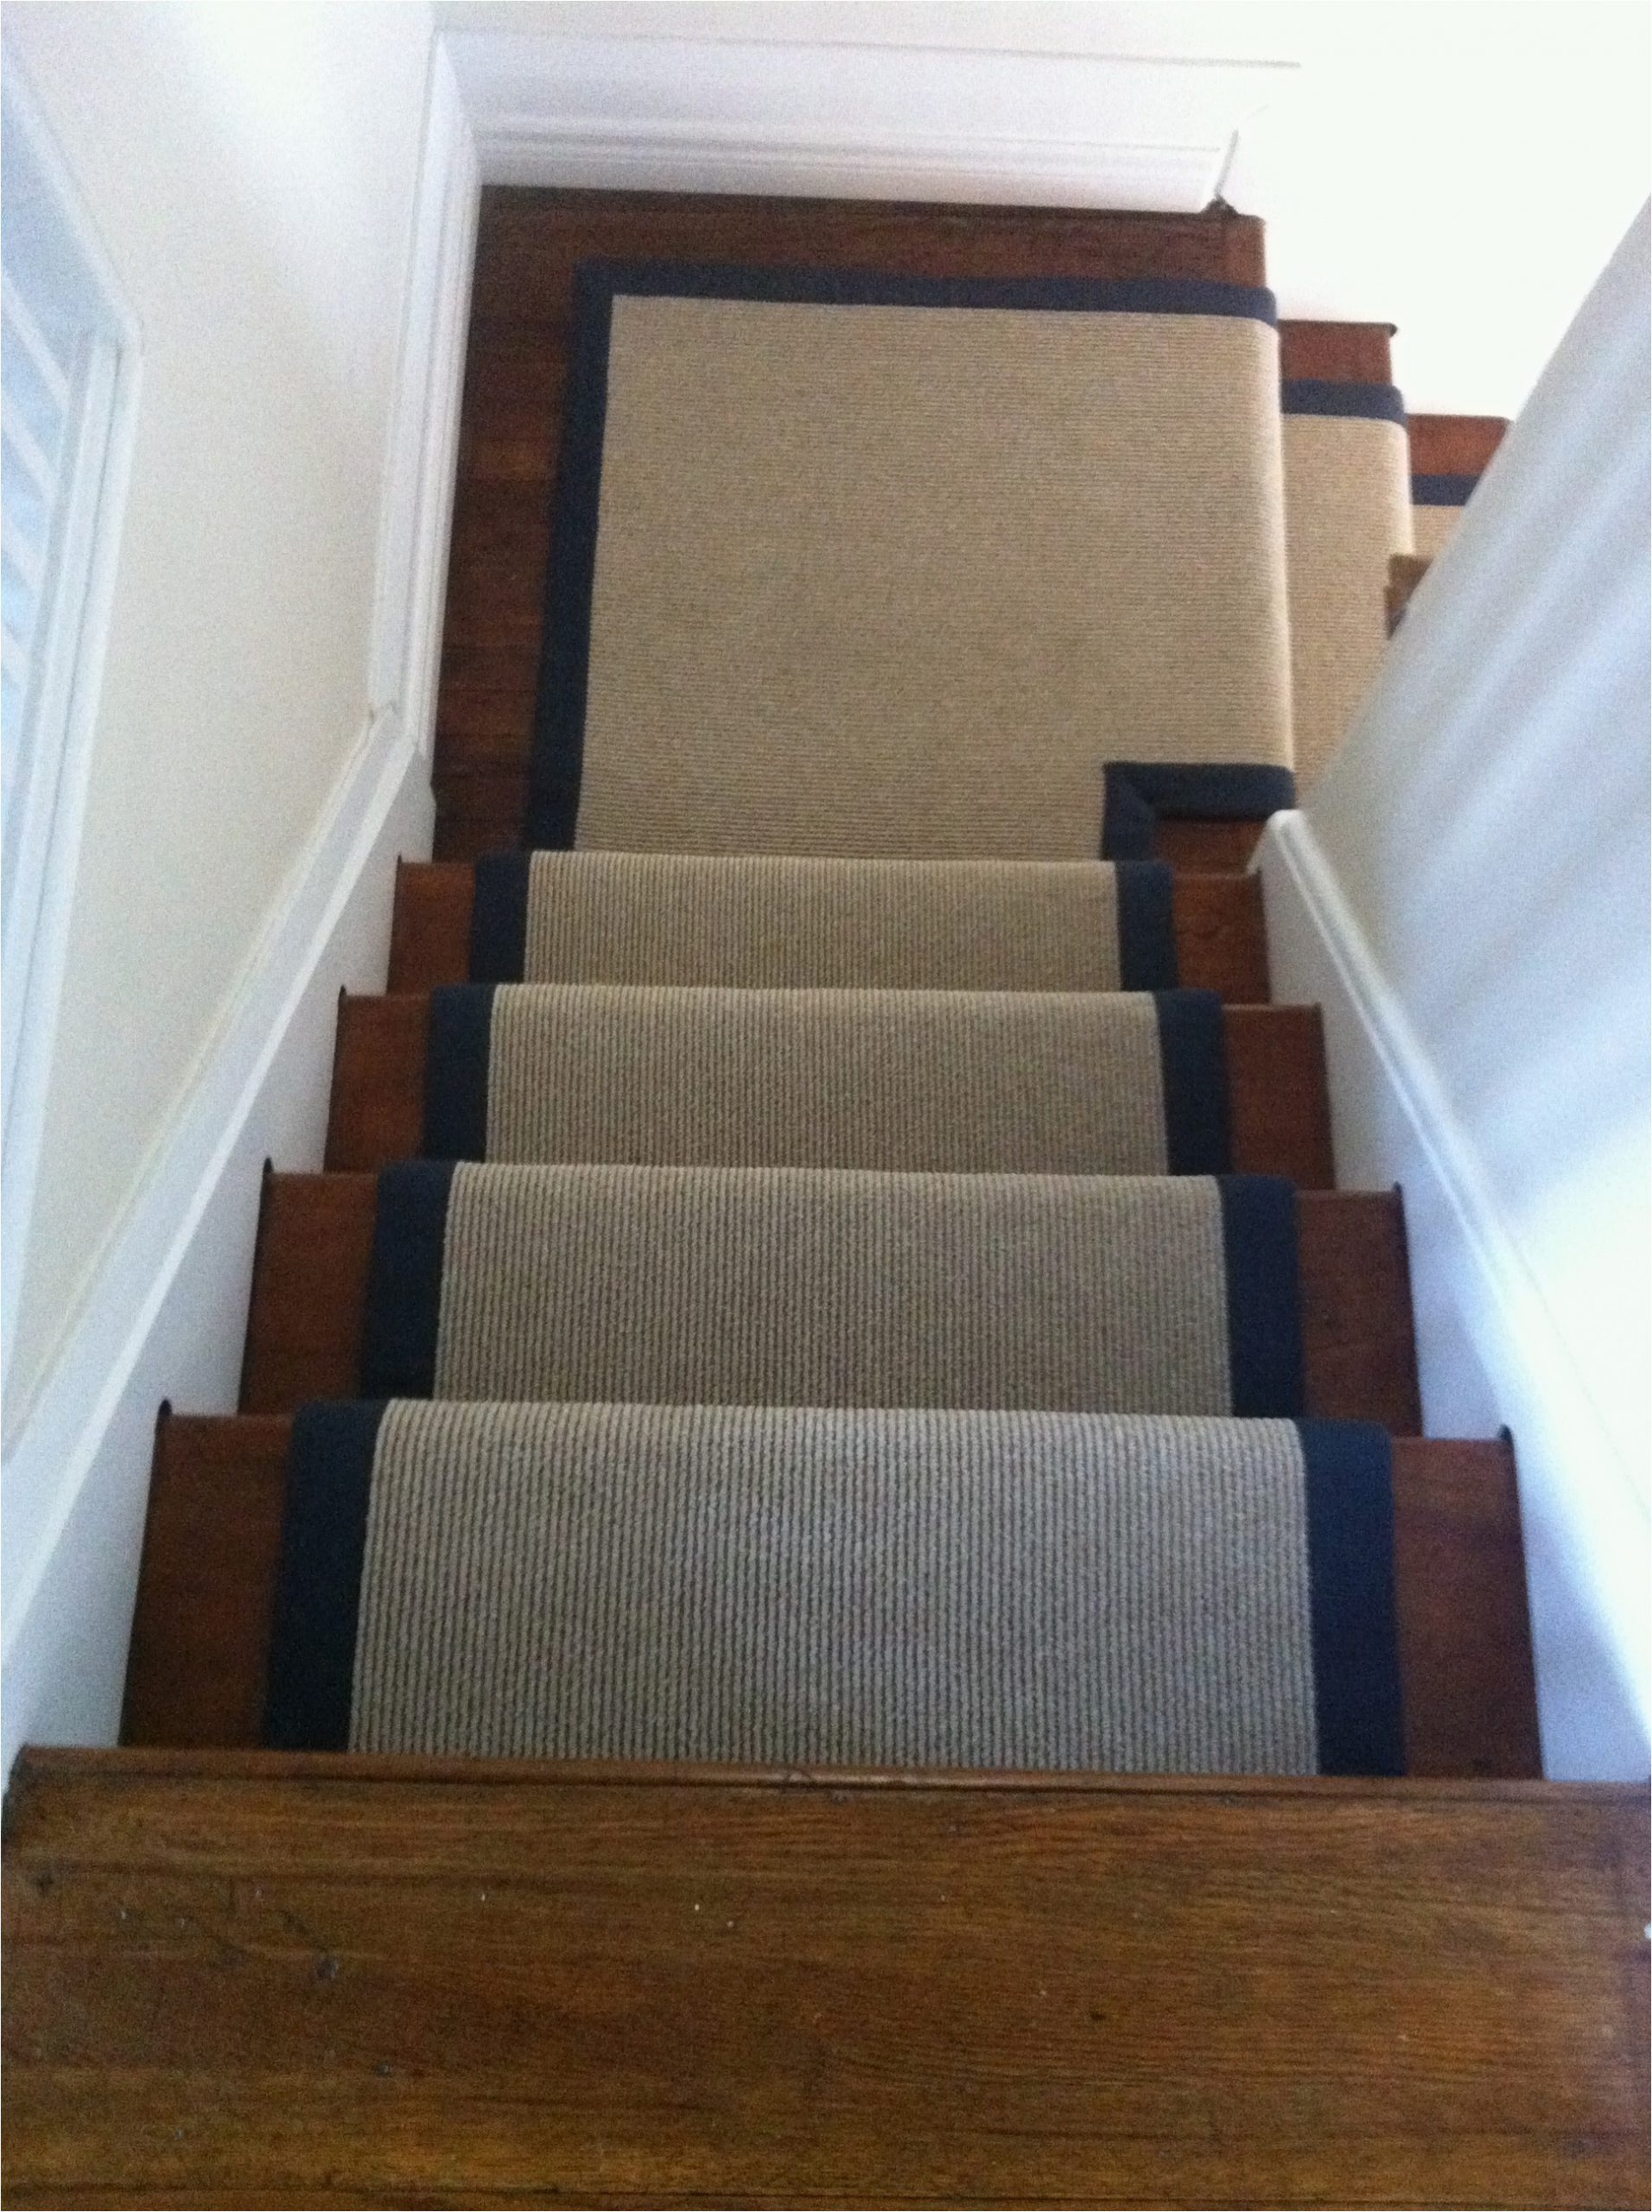 Area Rug for Stair Landing Berber Carpet Stair Runners toronto Staircase Carpeting Cost